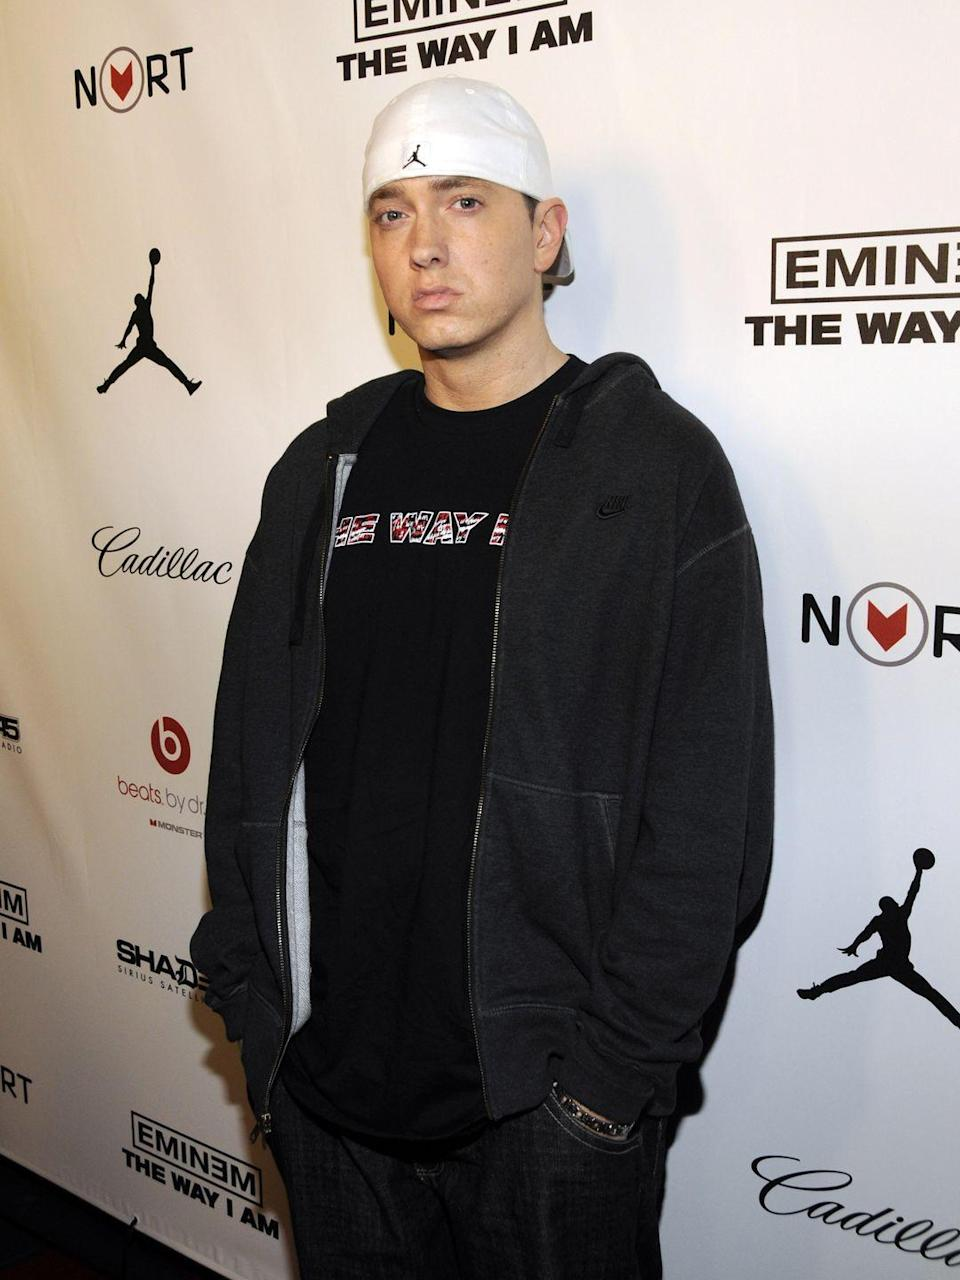 "<p>While promoting his 2010 album, <em>Recovery, </em>Eminem told <em><a href=""https://www.accessonline.com/articles/eminem-talks-overcoming-prescription-drug-addiction-86955"" rel=""nofollow noopener"" target=""_blank"" data-ylk=""slk:Access Hollywood"" class=""link rapid-noclick-resp"">Access Hollywood</a></em> about a close encounter he had: ""I had overdosed in 2007, like, right around Christmas in 2007…I pretty much almost died. I pulled through and went home and relapsed less than a month later and I literally shot back up to the amount of pills I was taking, shot right back up to where I overdosed."" He says he eventually got tired of living that way and decided to ""take responsibility for the way I'm living and stop blaming other people.""</p>"